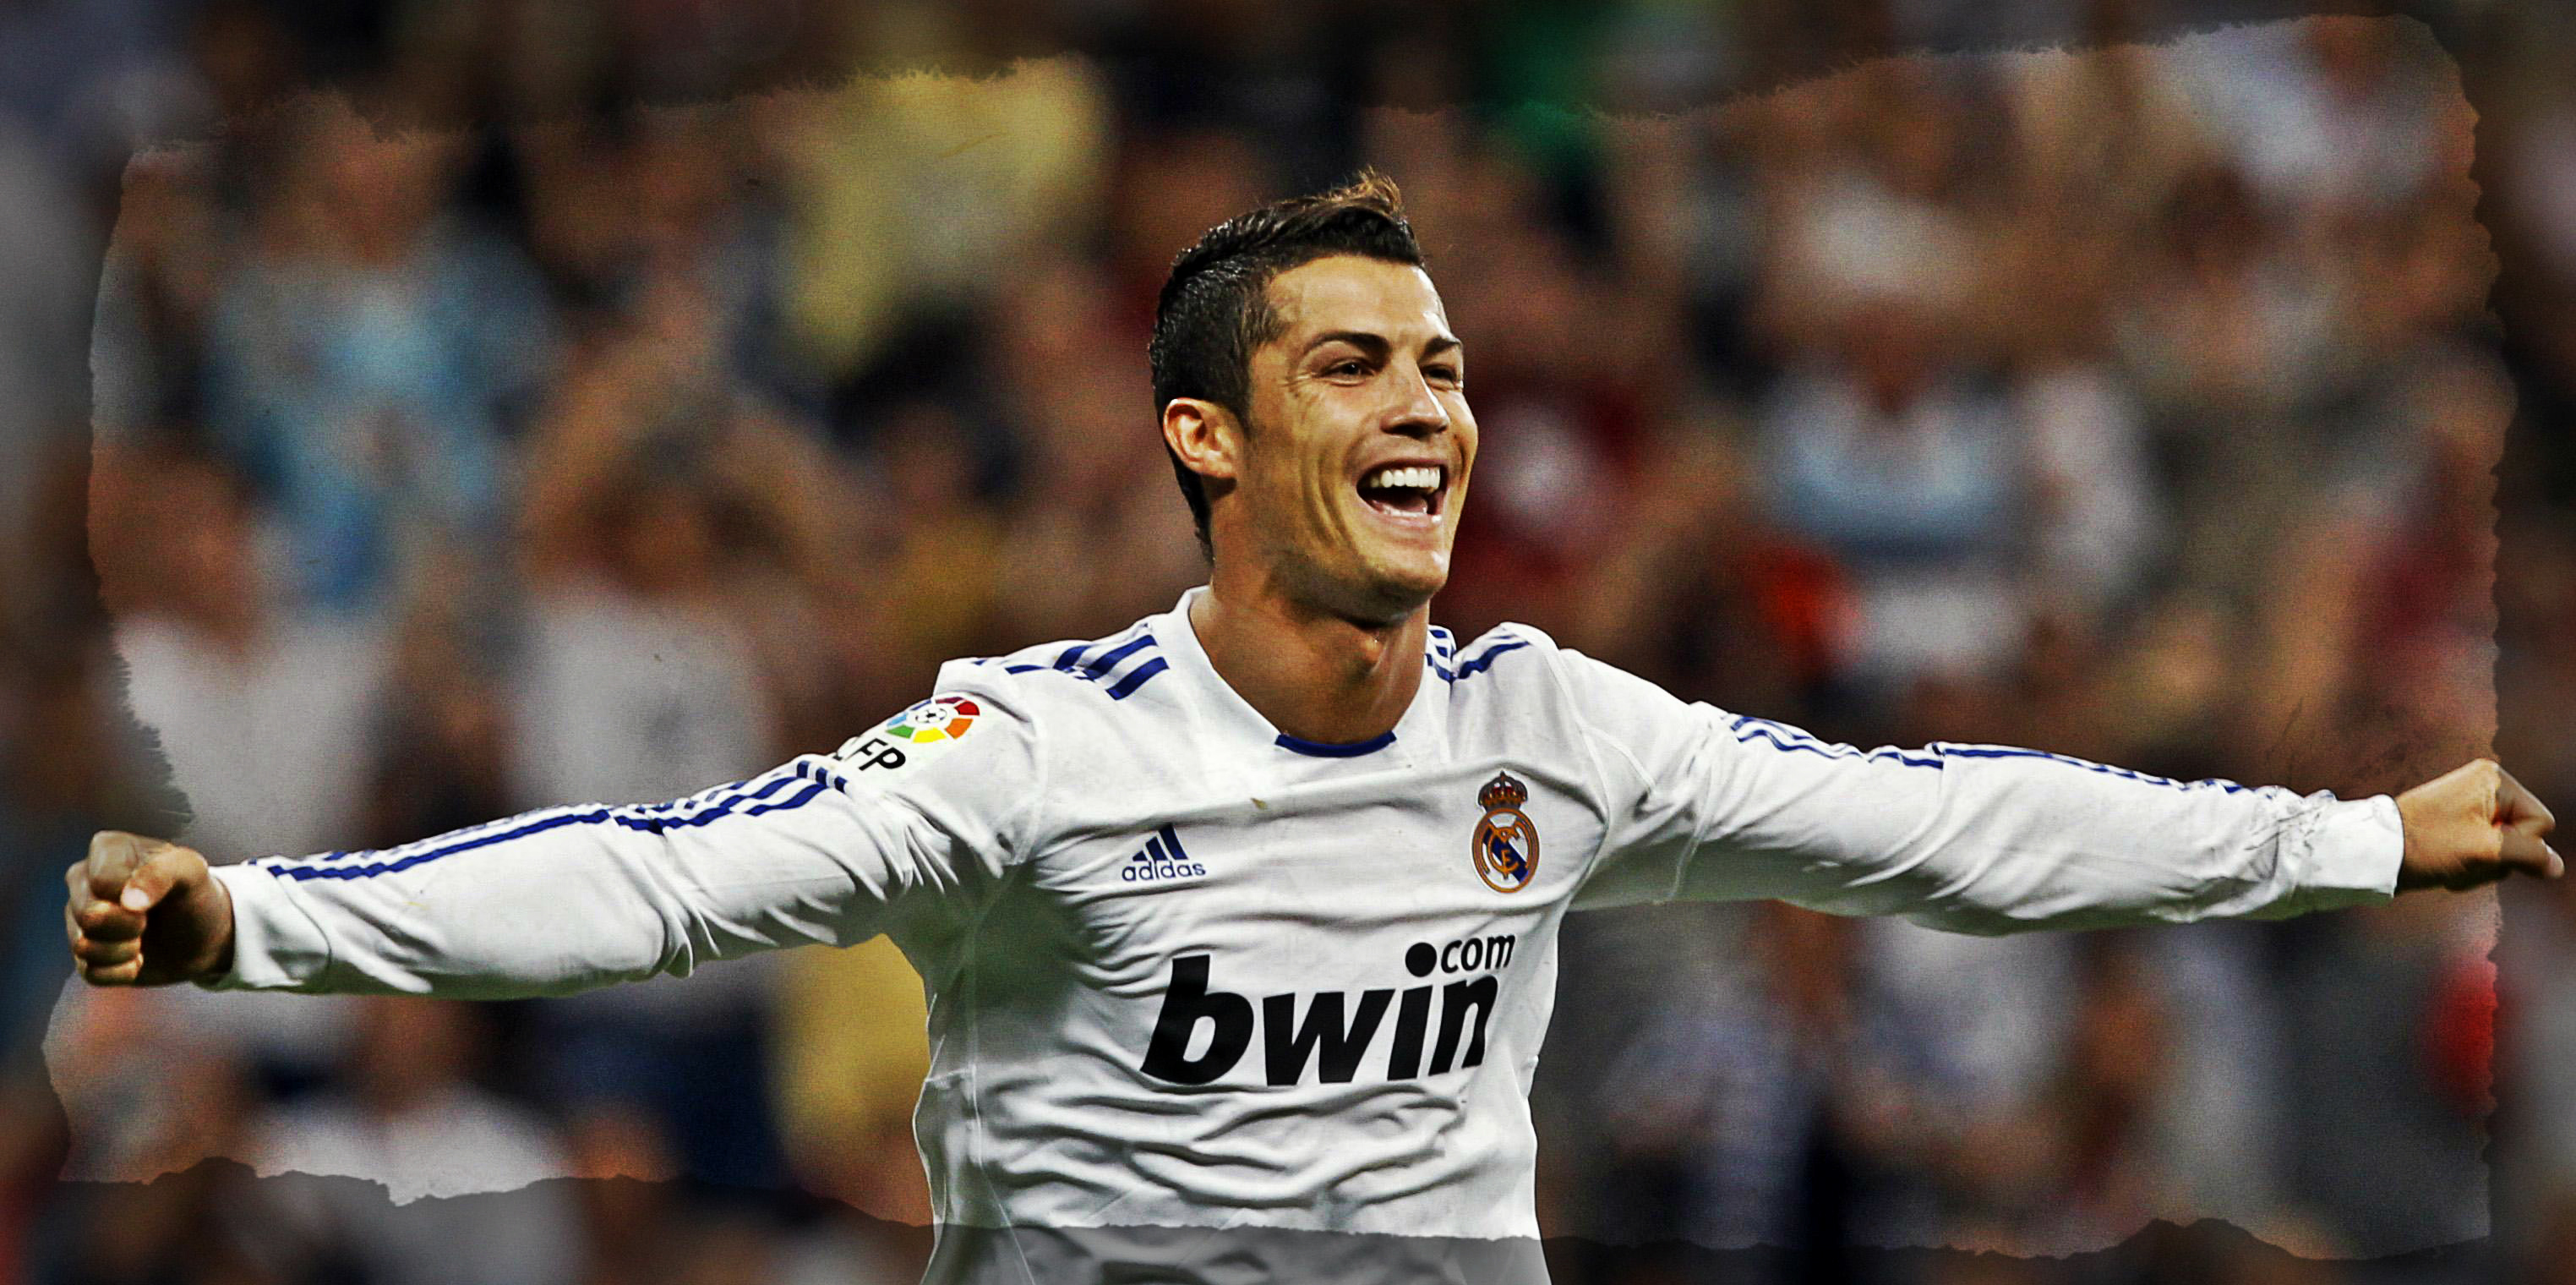 Best Cristiano Ronaldo Celebration Wallpapers Full HD 2015